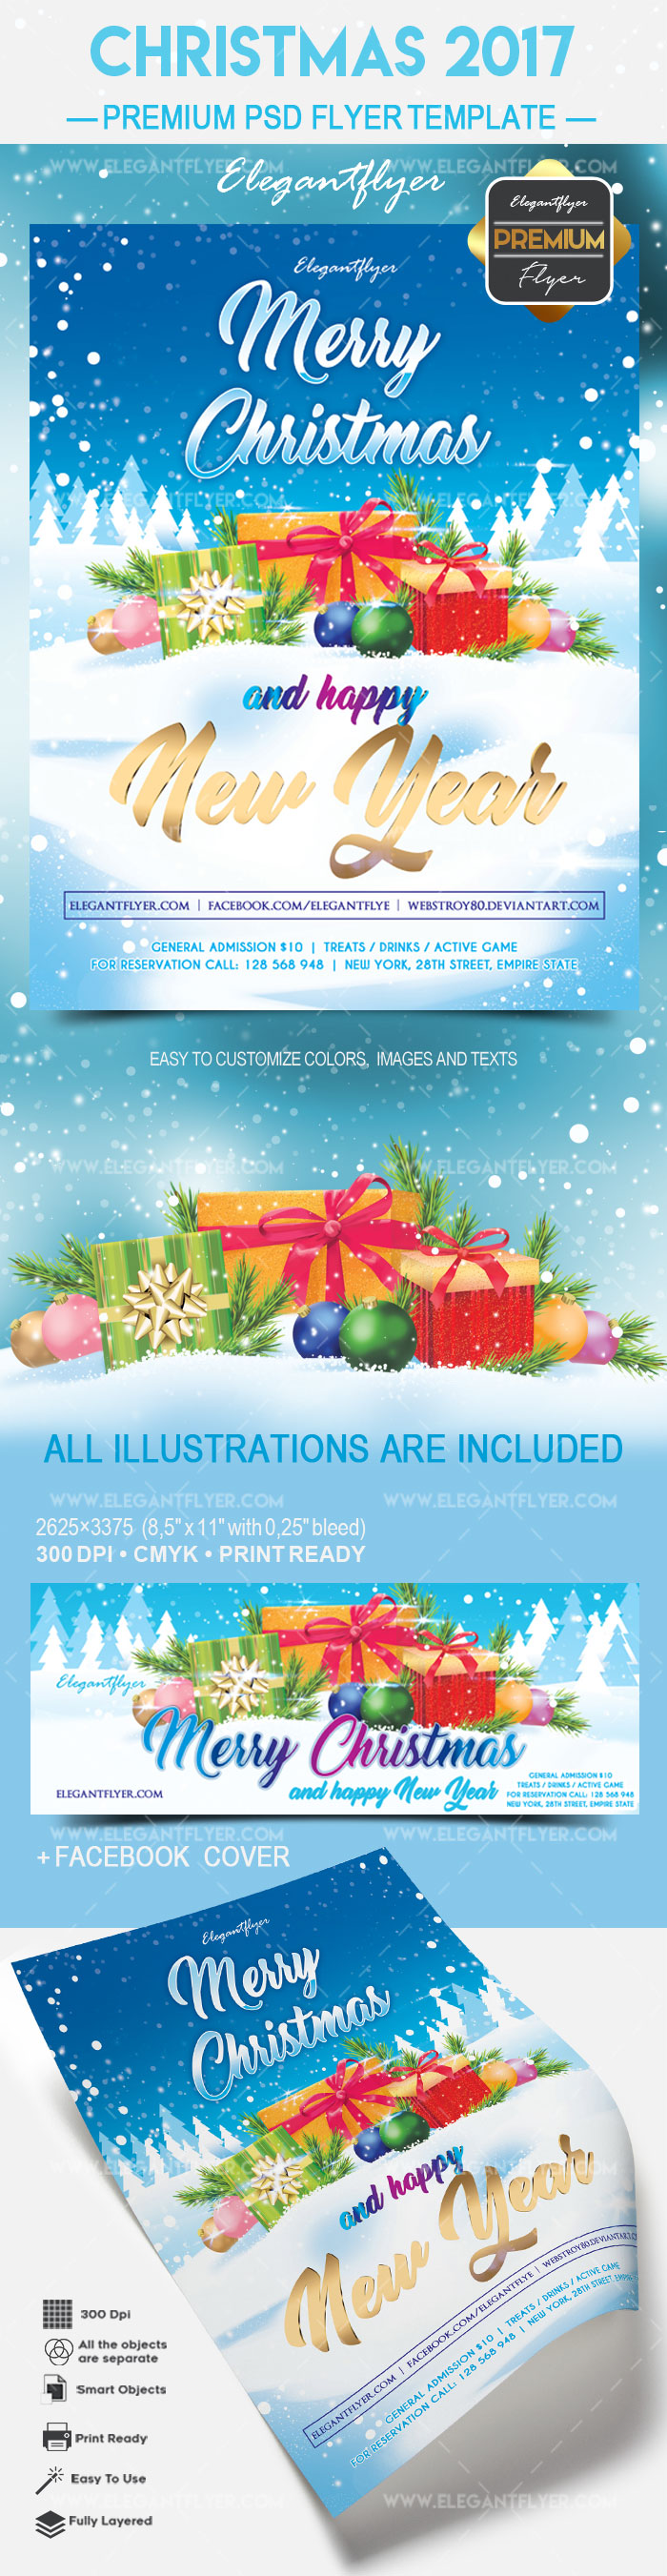 Christmas 2017 – Flyer PSD Template